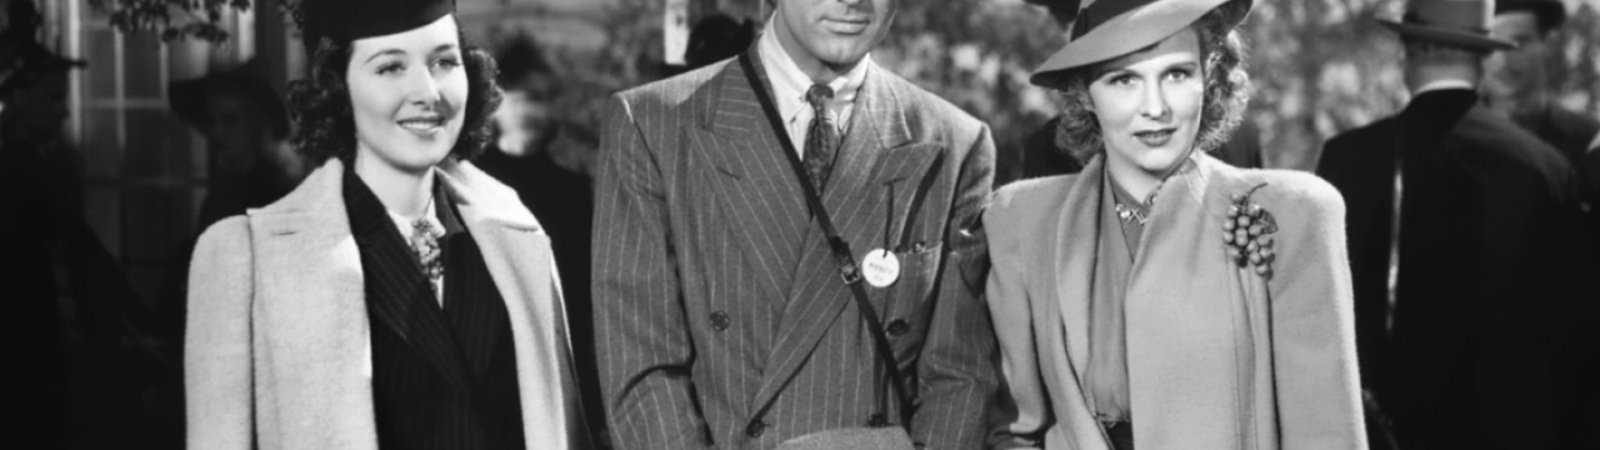 Photo dernier film Sir Cedric Hardwicke